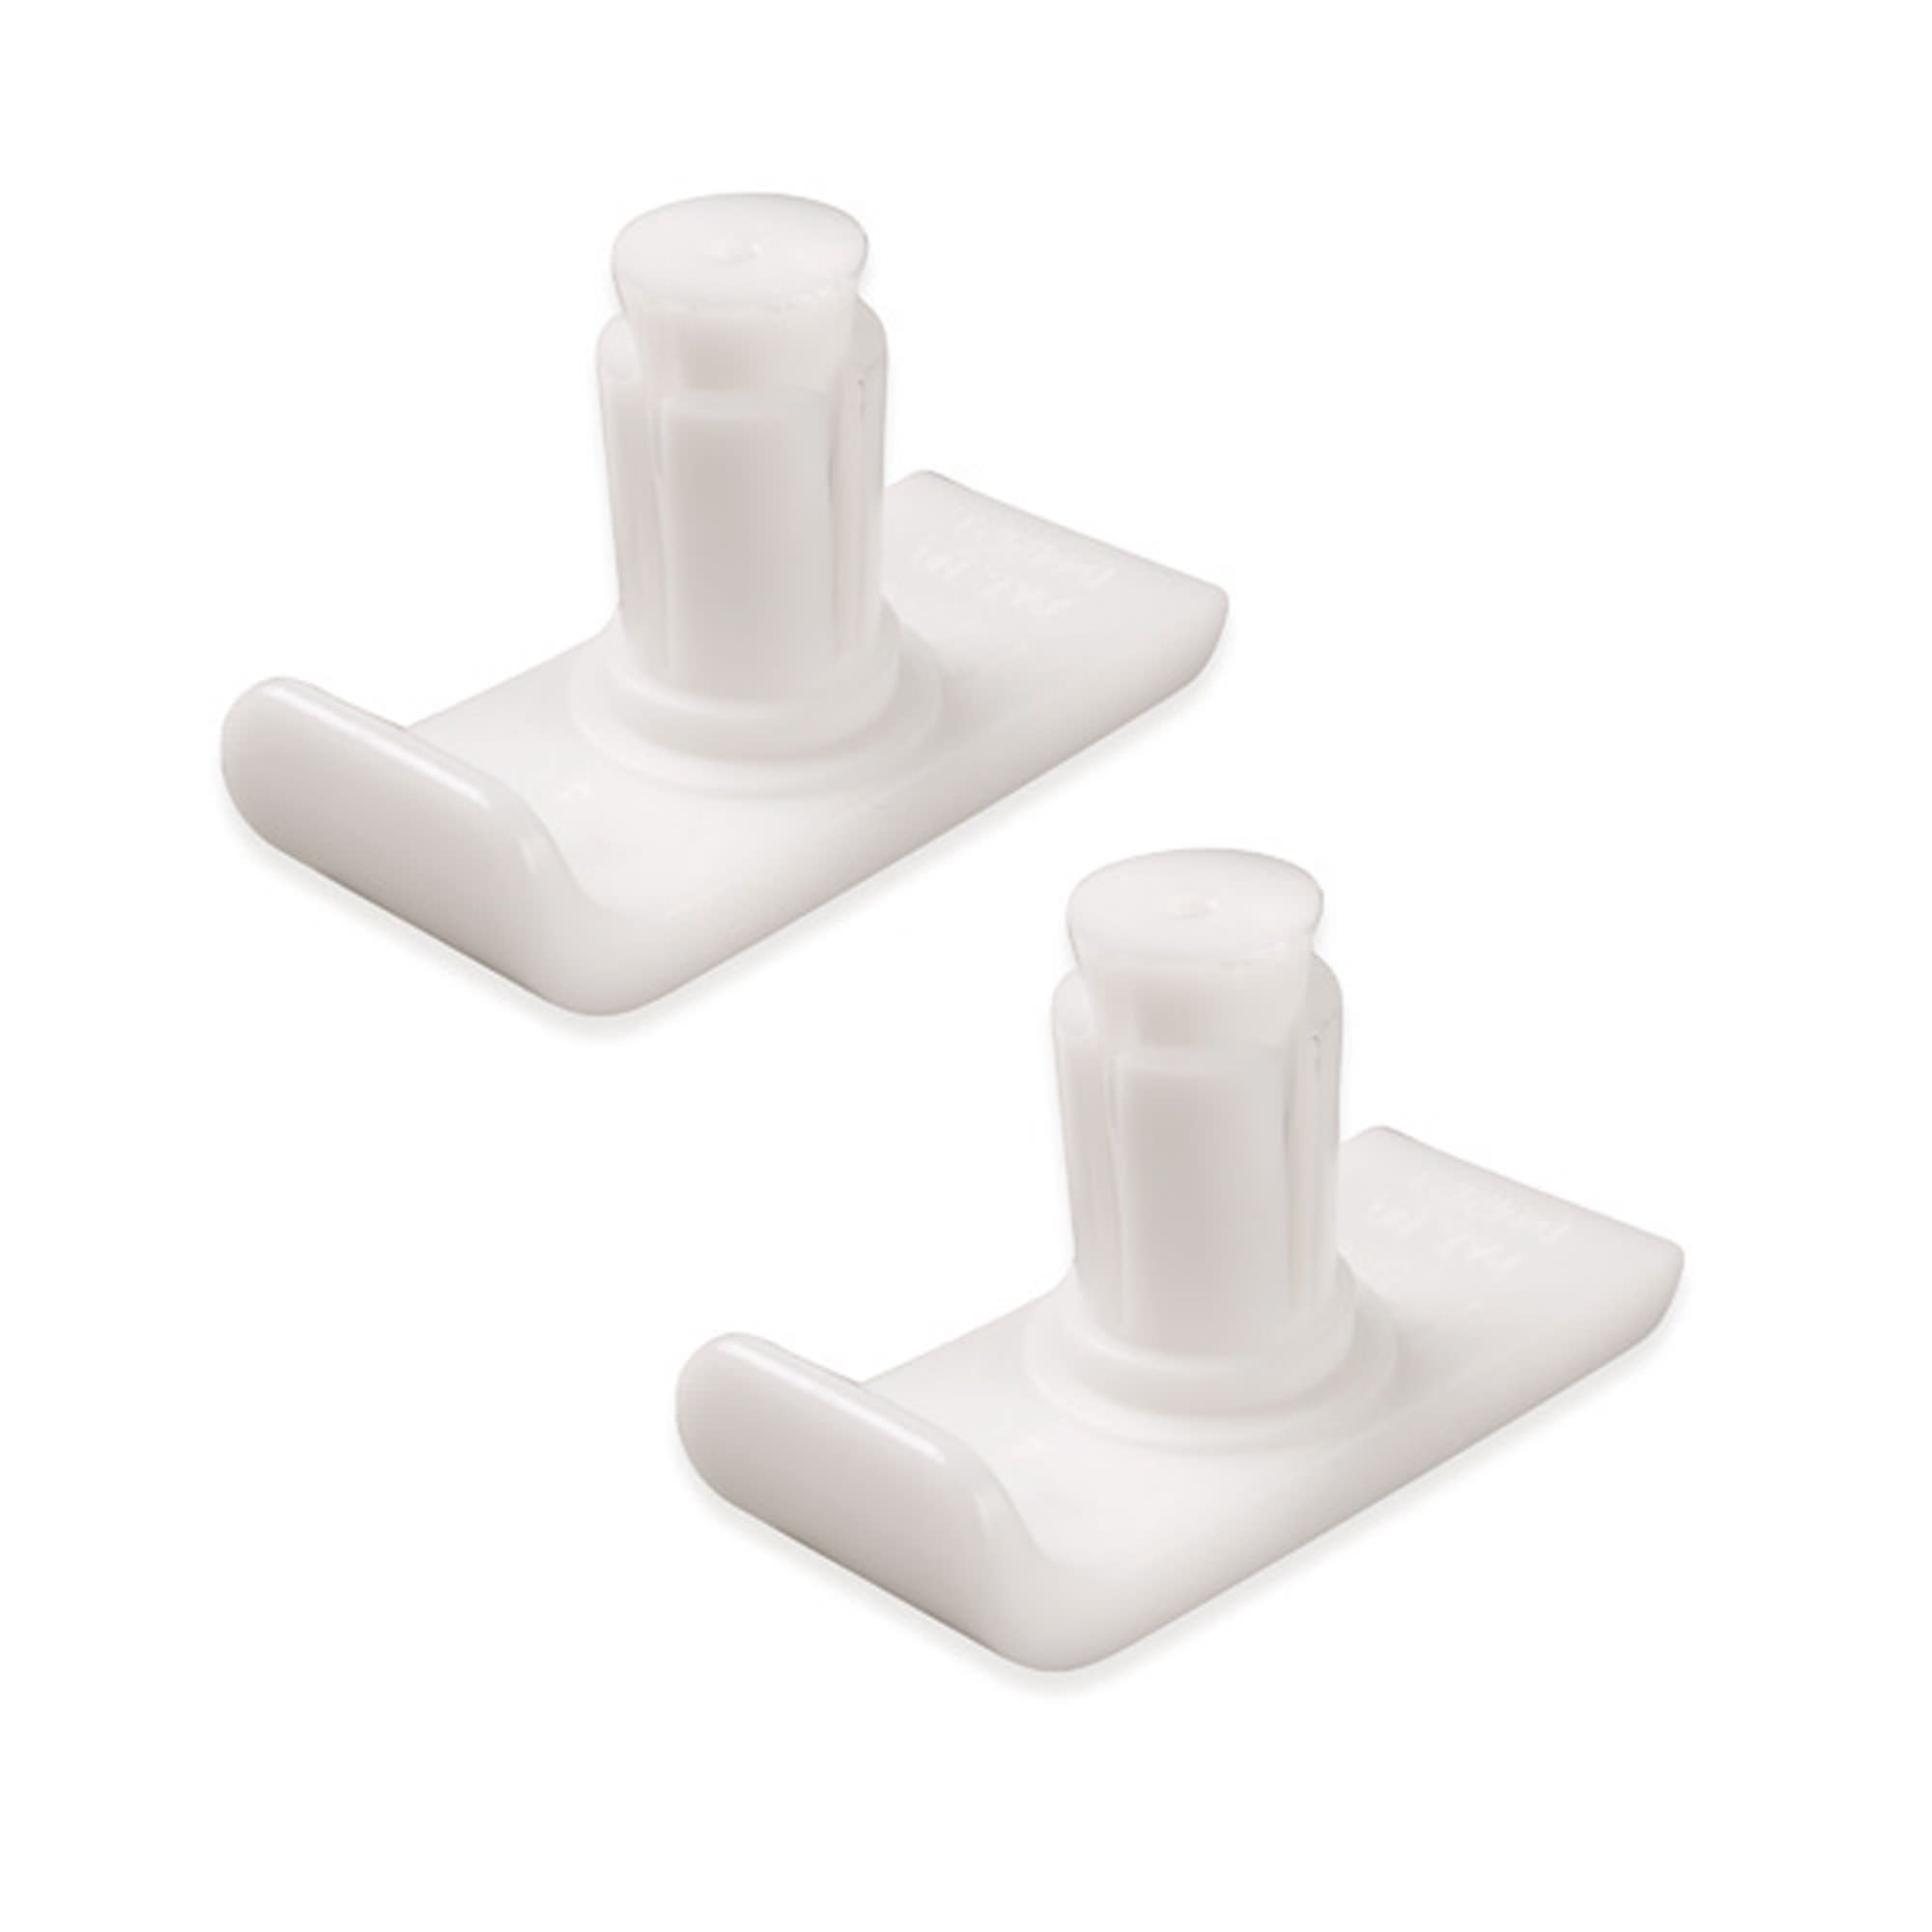 Penco Universal Walker Glides, 1 Pair